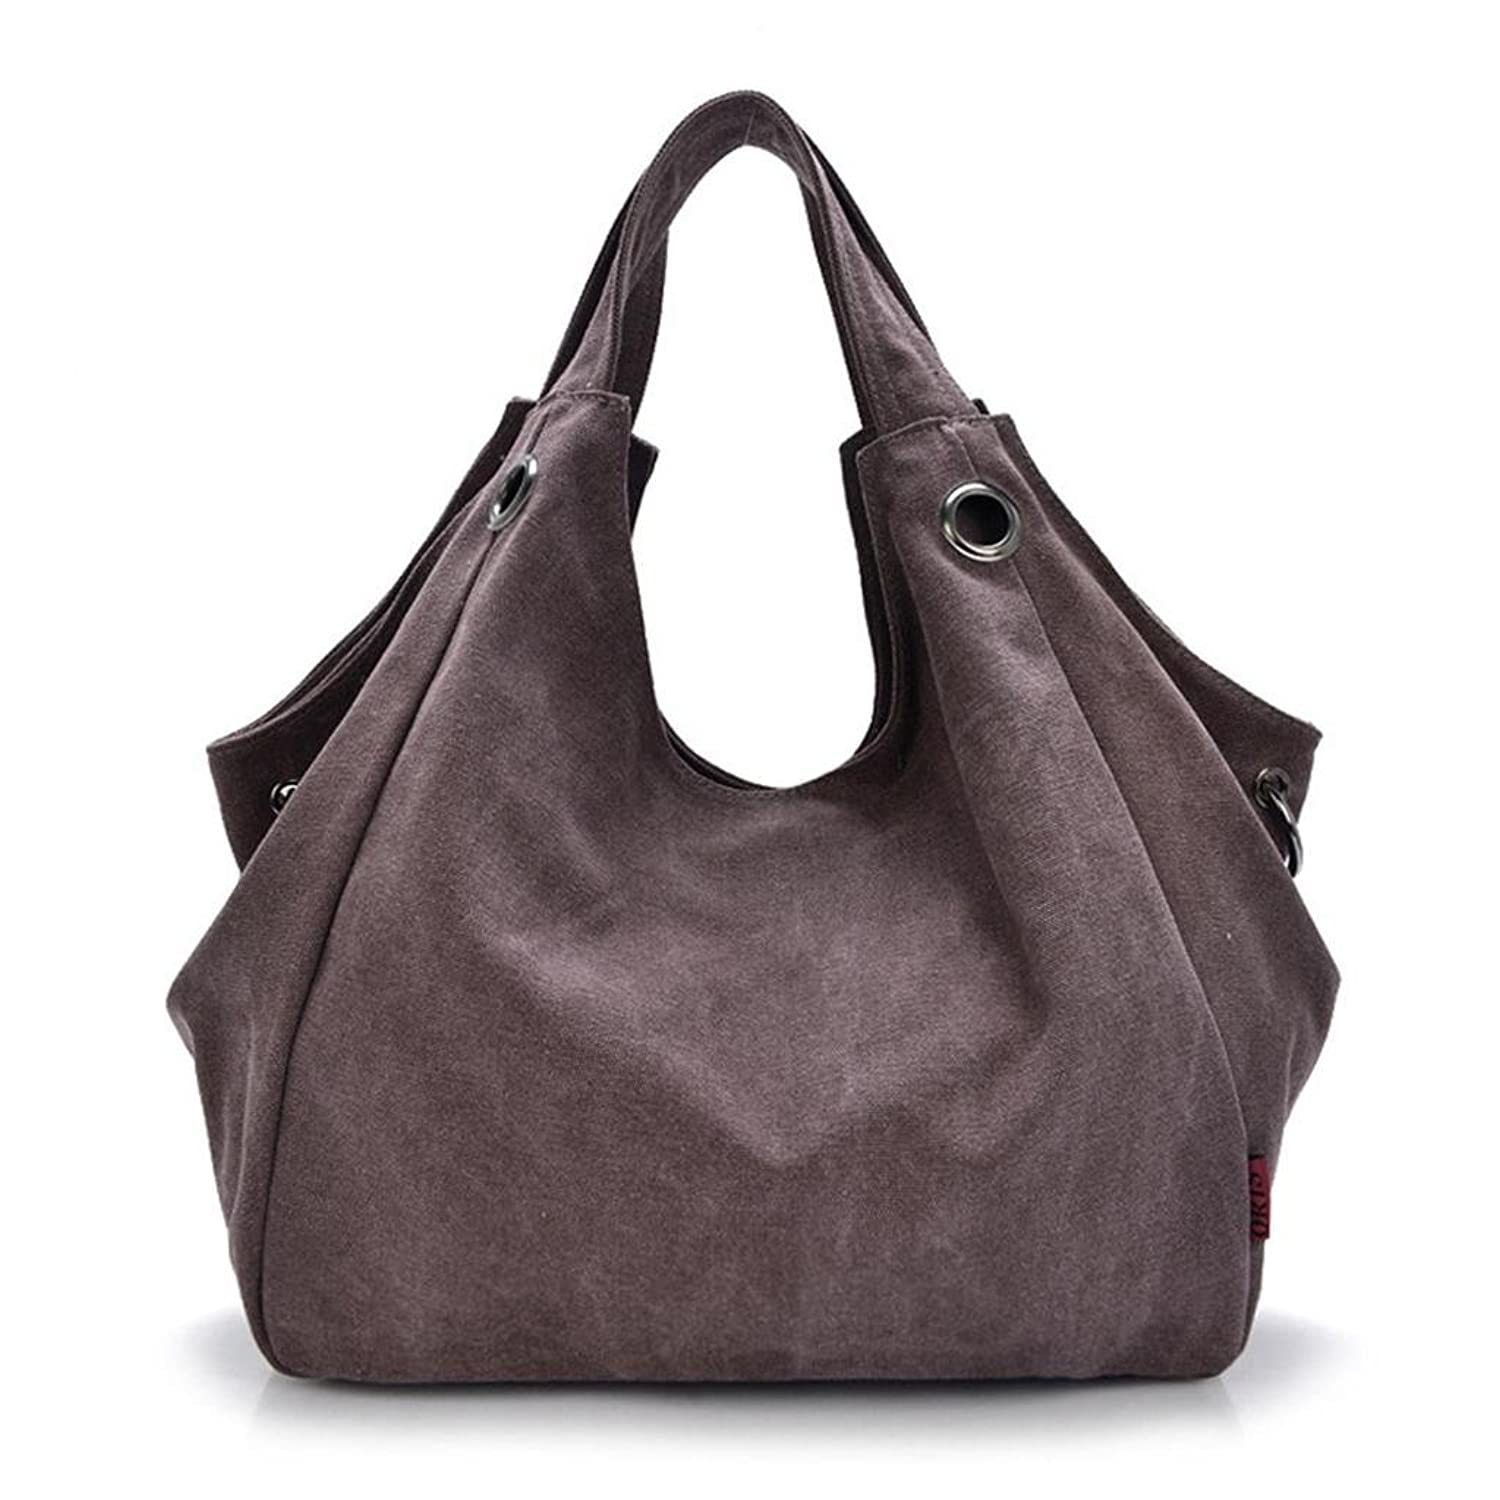 Tom Clovers New Simple Style Canvas Handbag Tote Top Handle Shoulder Crossbody Bags for Women